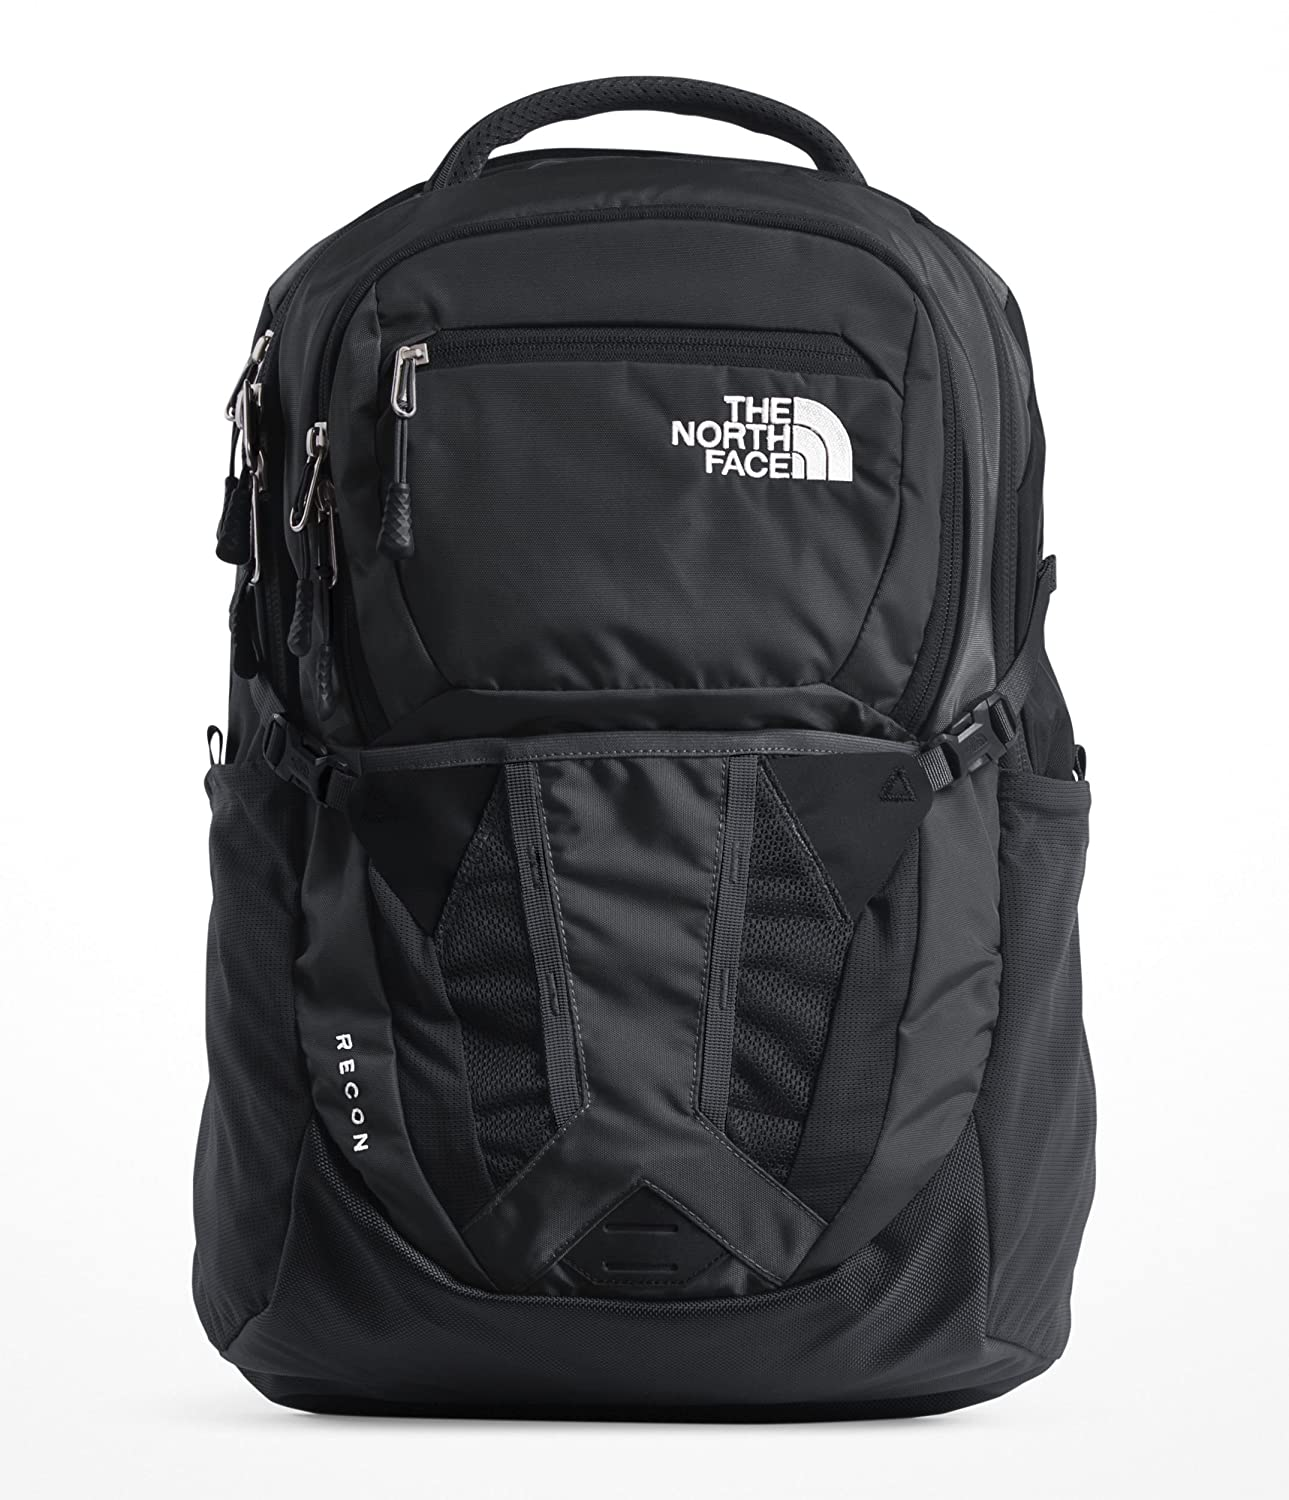 The North Face Recon Backpack - Women's TNF Black NF0A3KV2